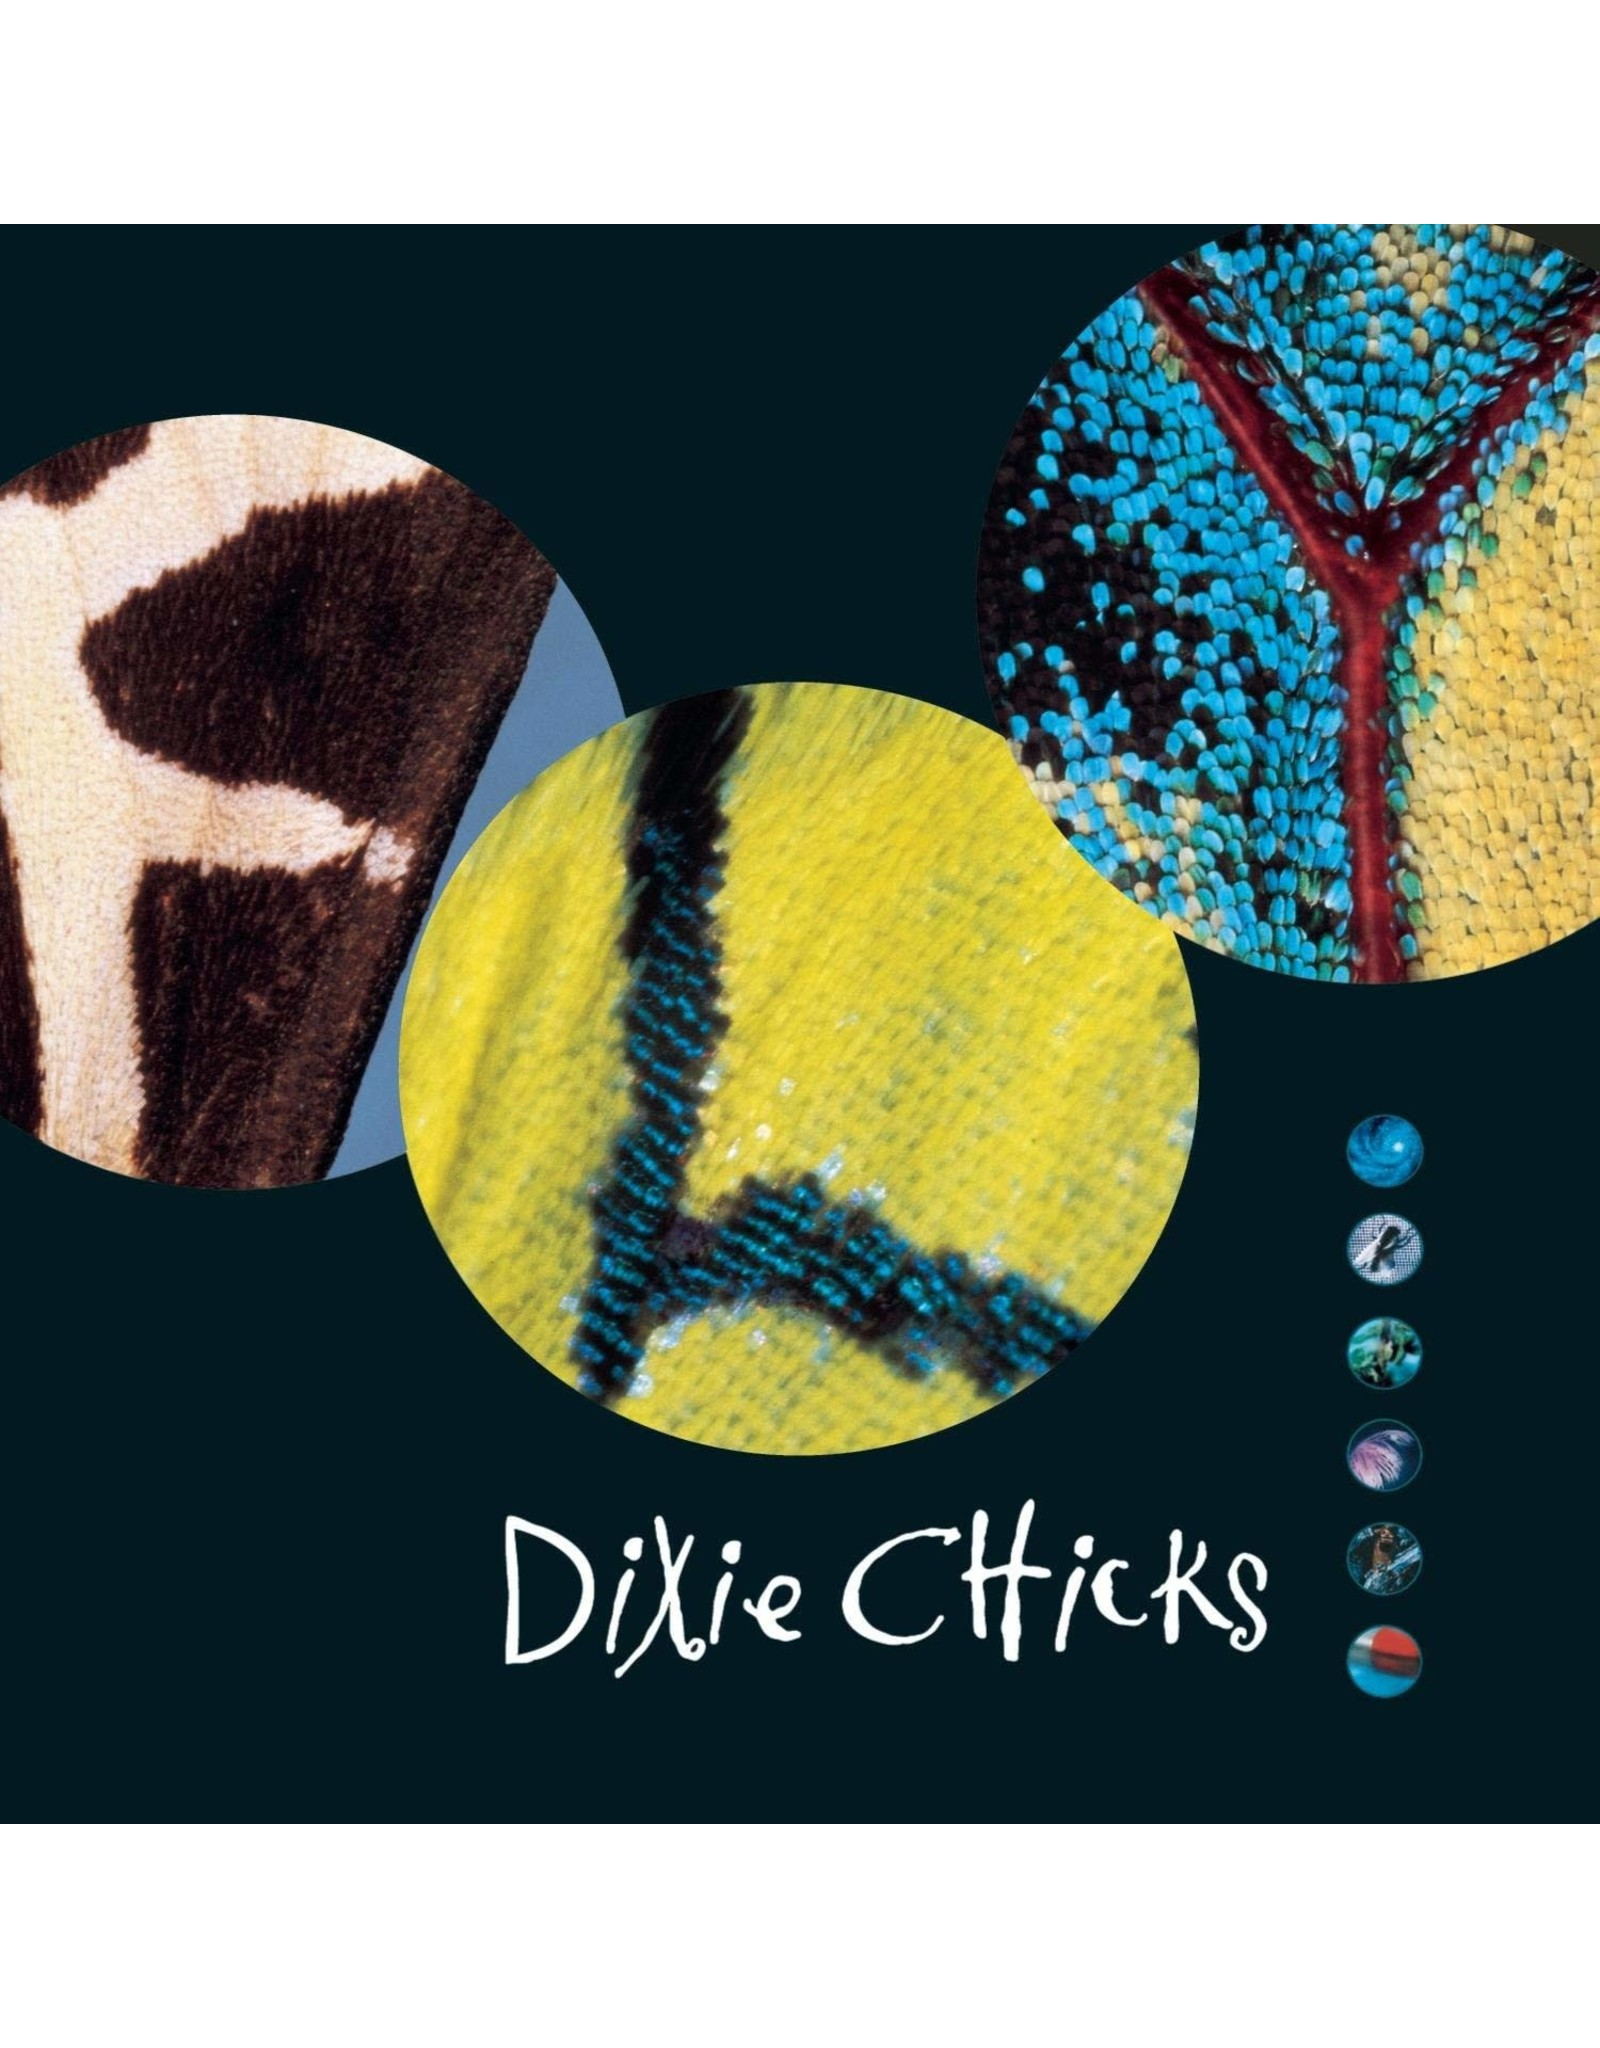 Dixie Chicks - Fly